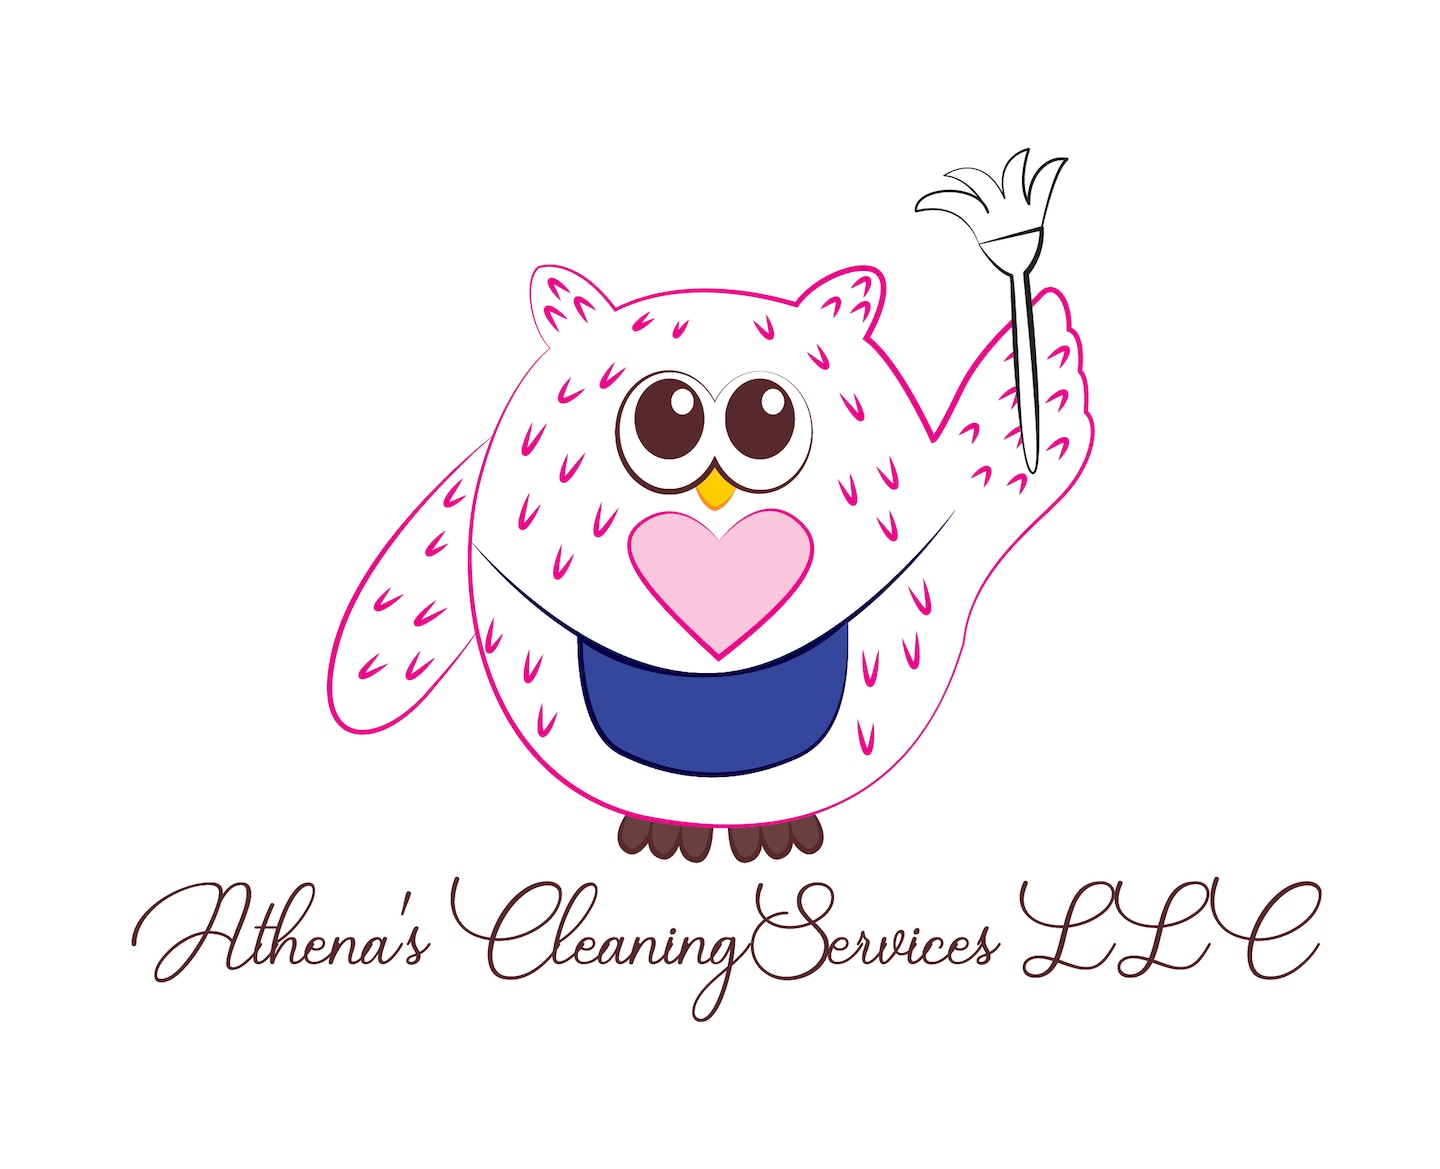 Athena's Cleaning Services LLC